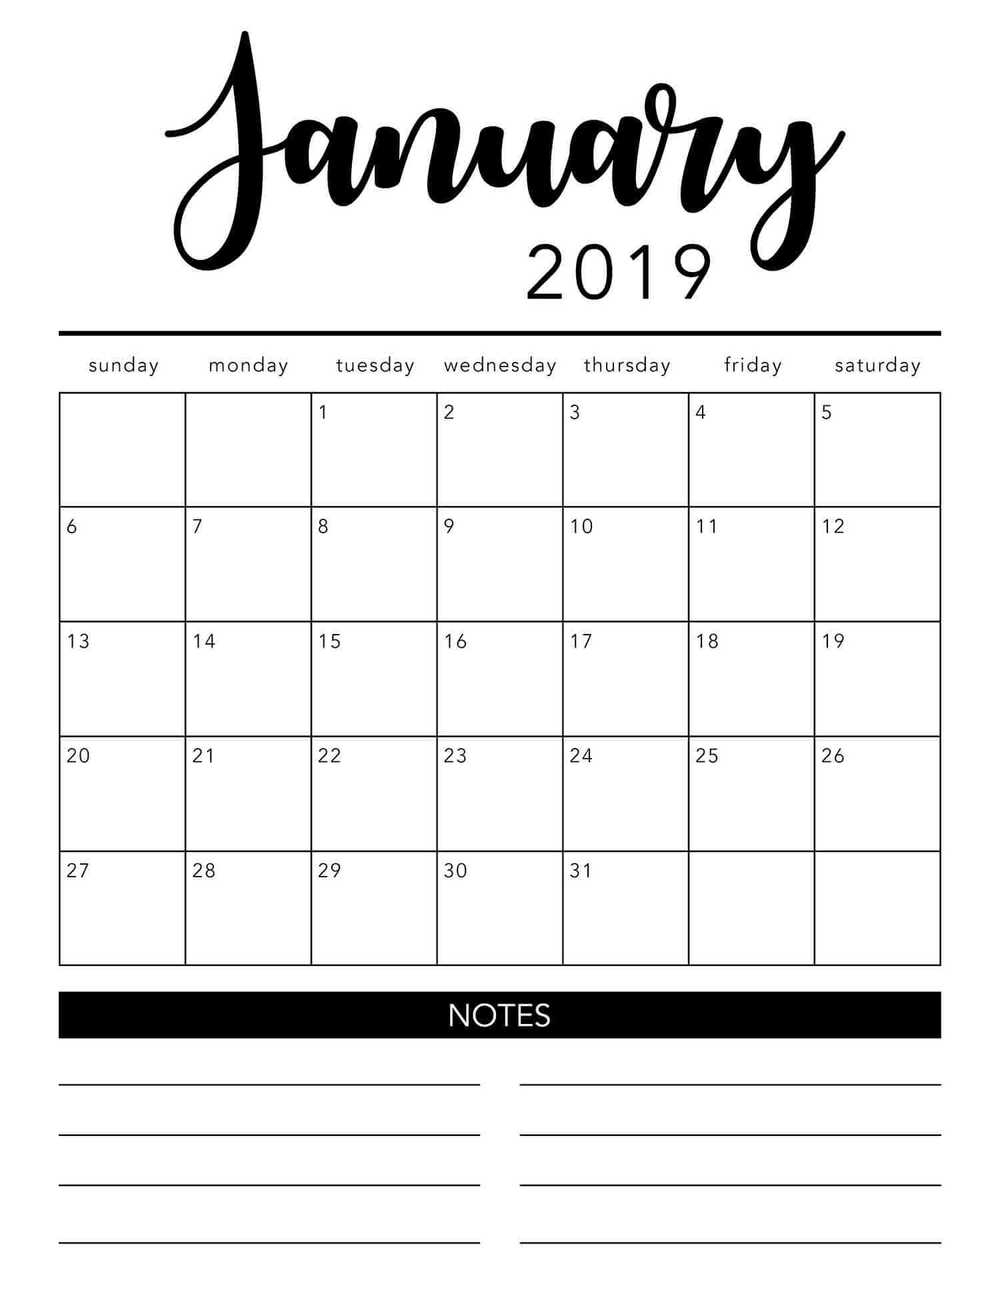 Free 2019 Printable Calendar Template (2 Colors!) - I Heart Naptime for Printable Monthly Calendar Templates